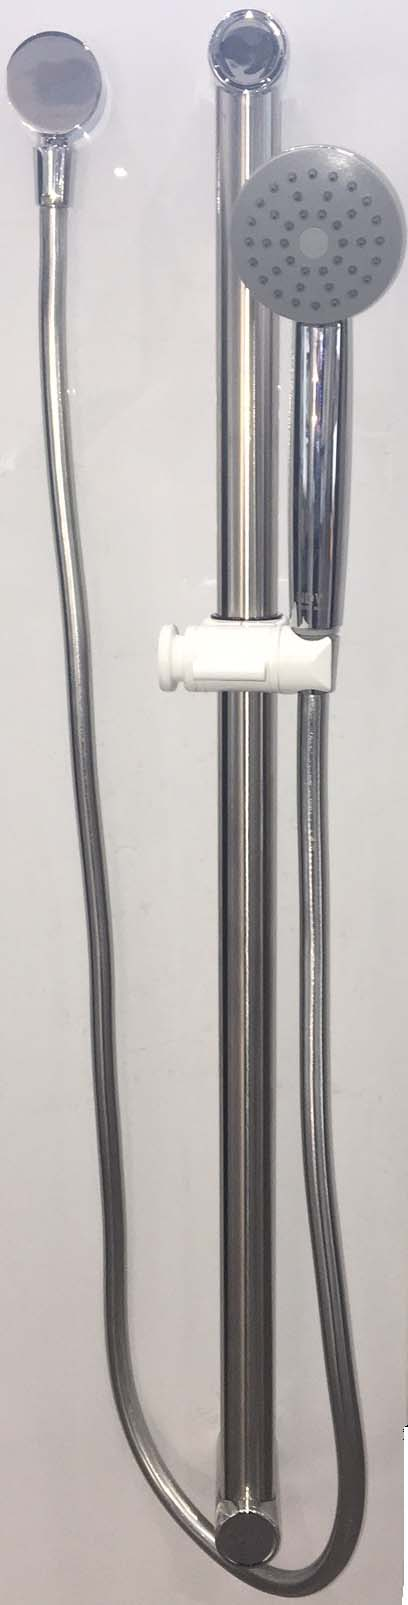 Osborne Commercial Stainless Steel rail set